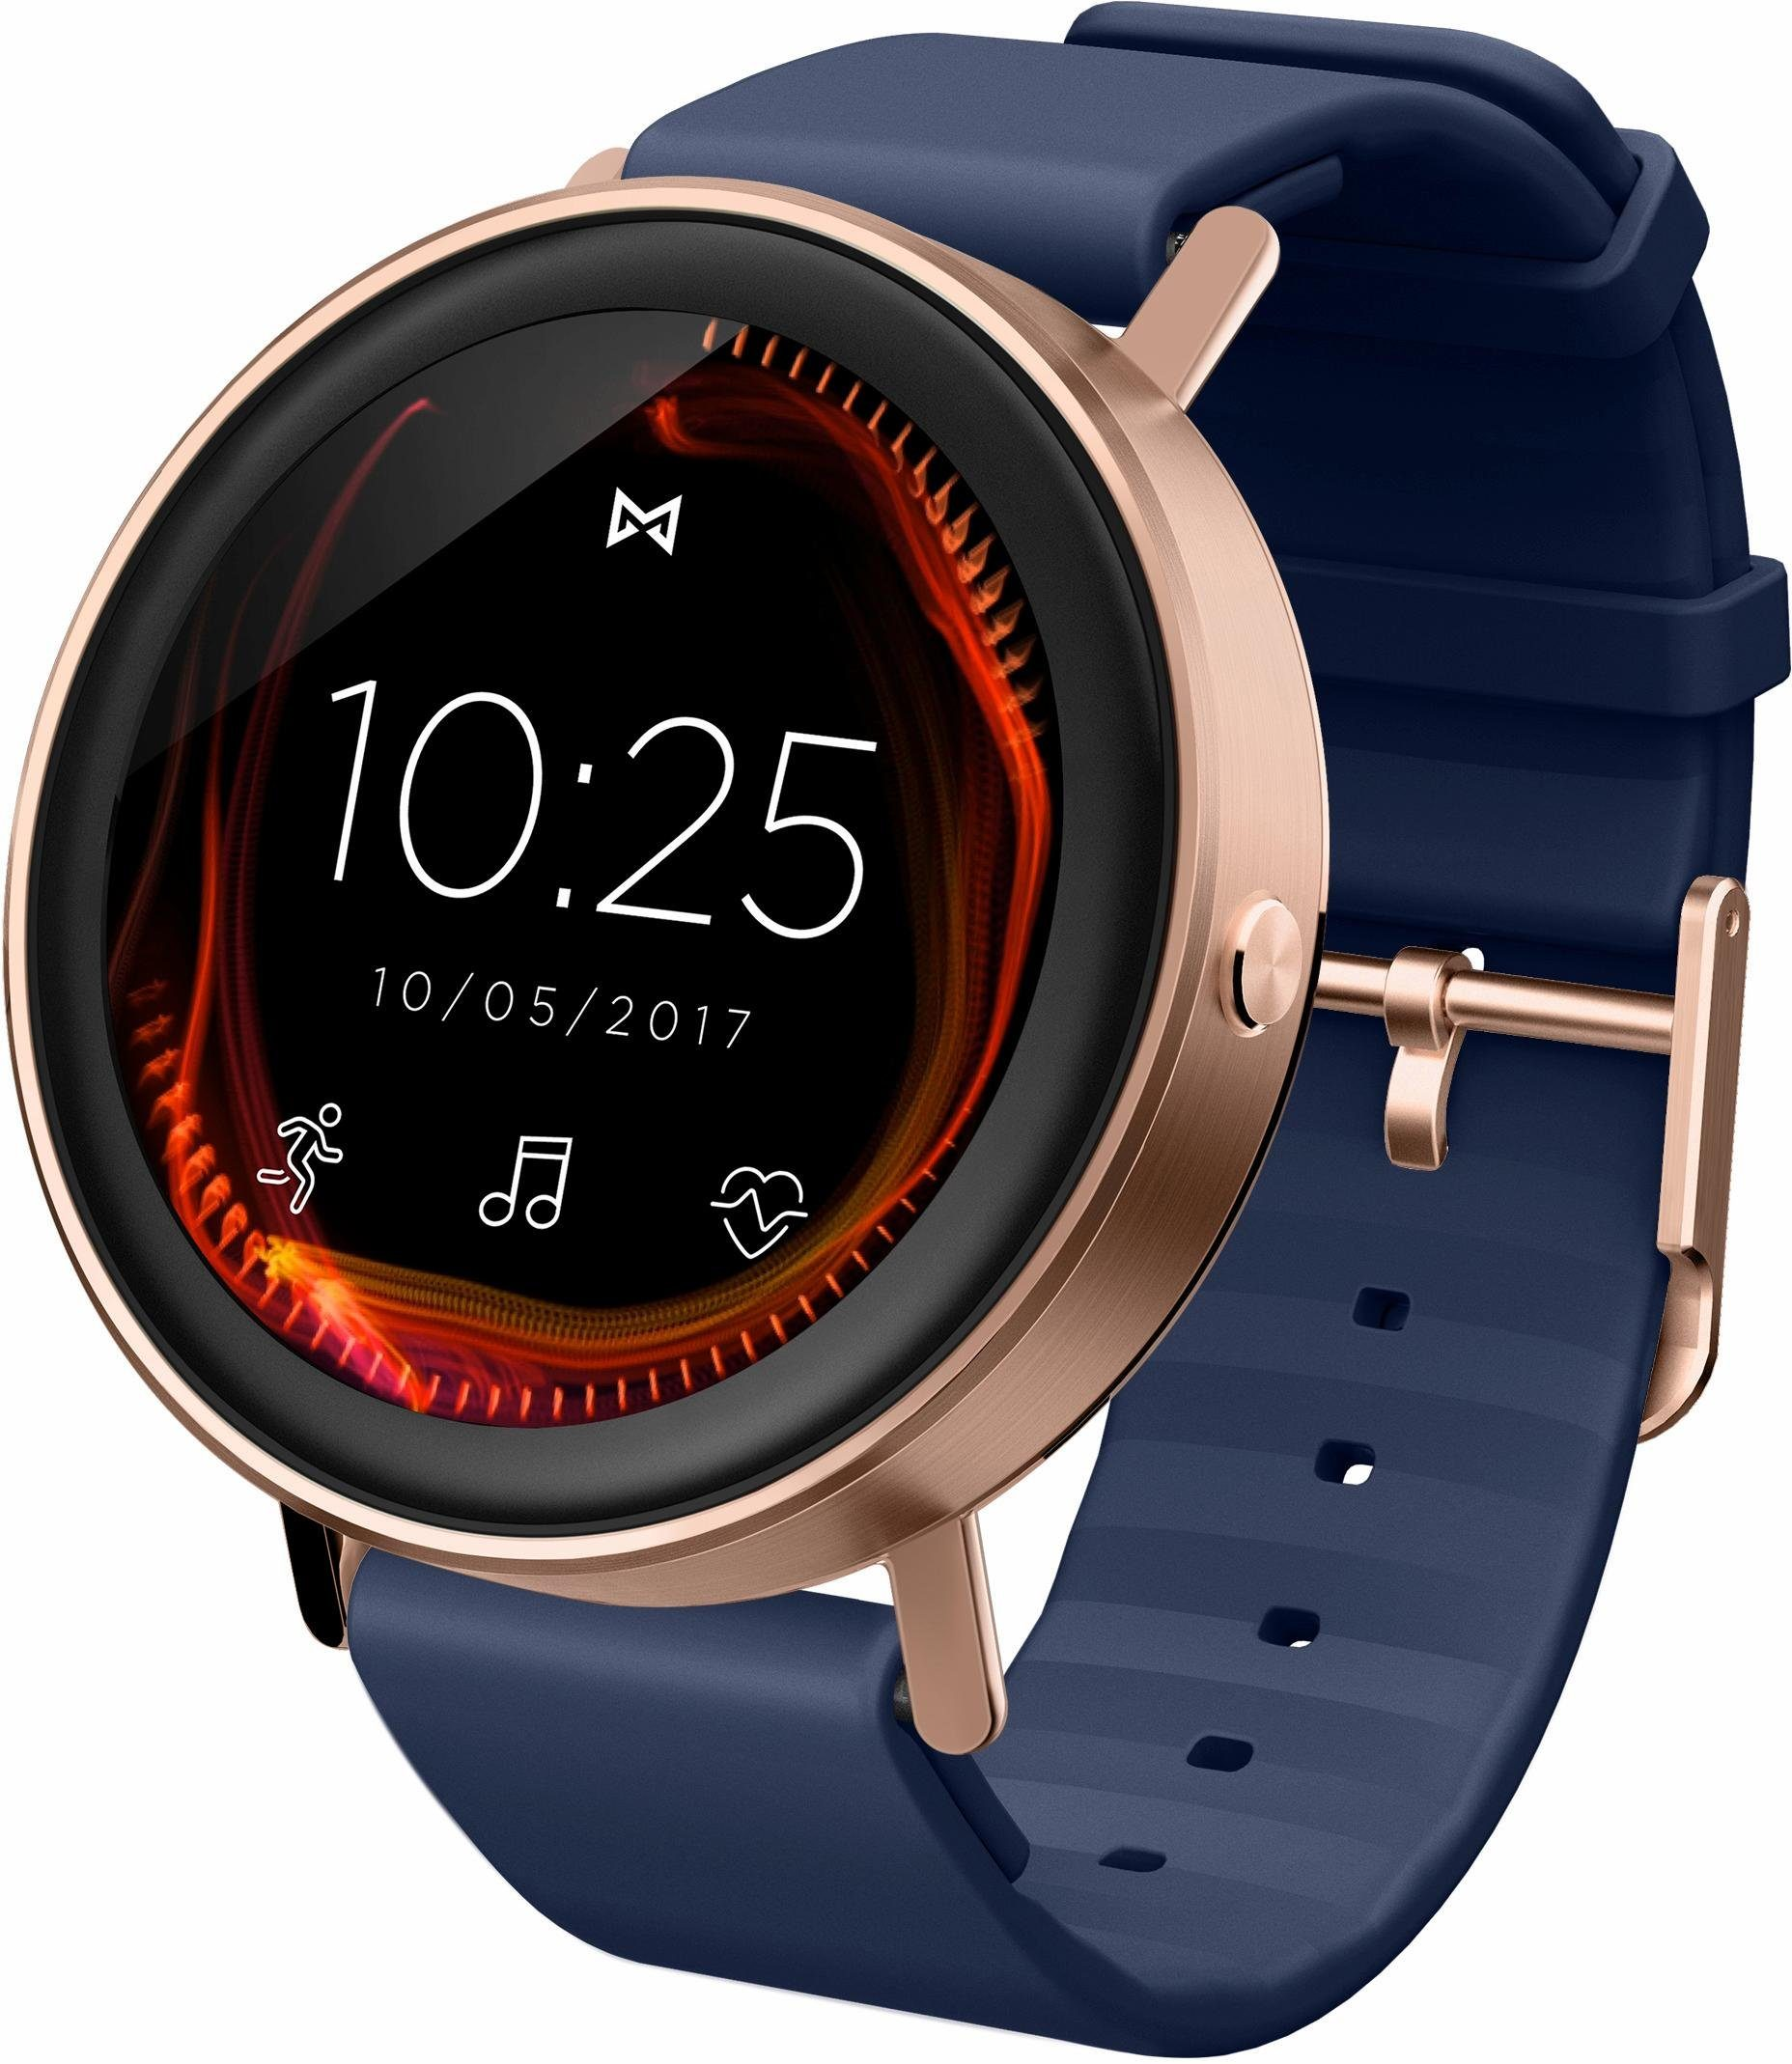 Misfit VAPOR, MIS7001 Smartwatch (Android Wear)